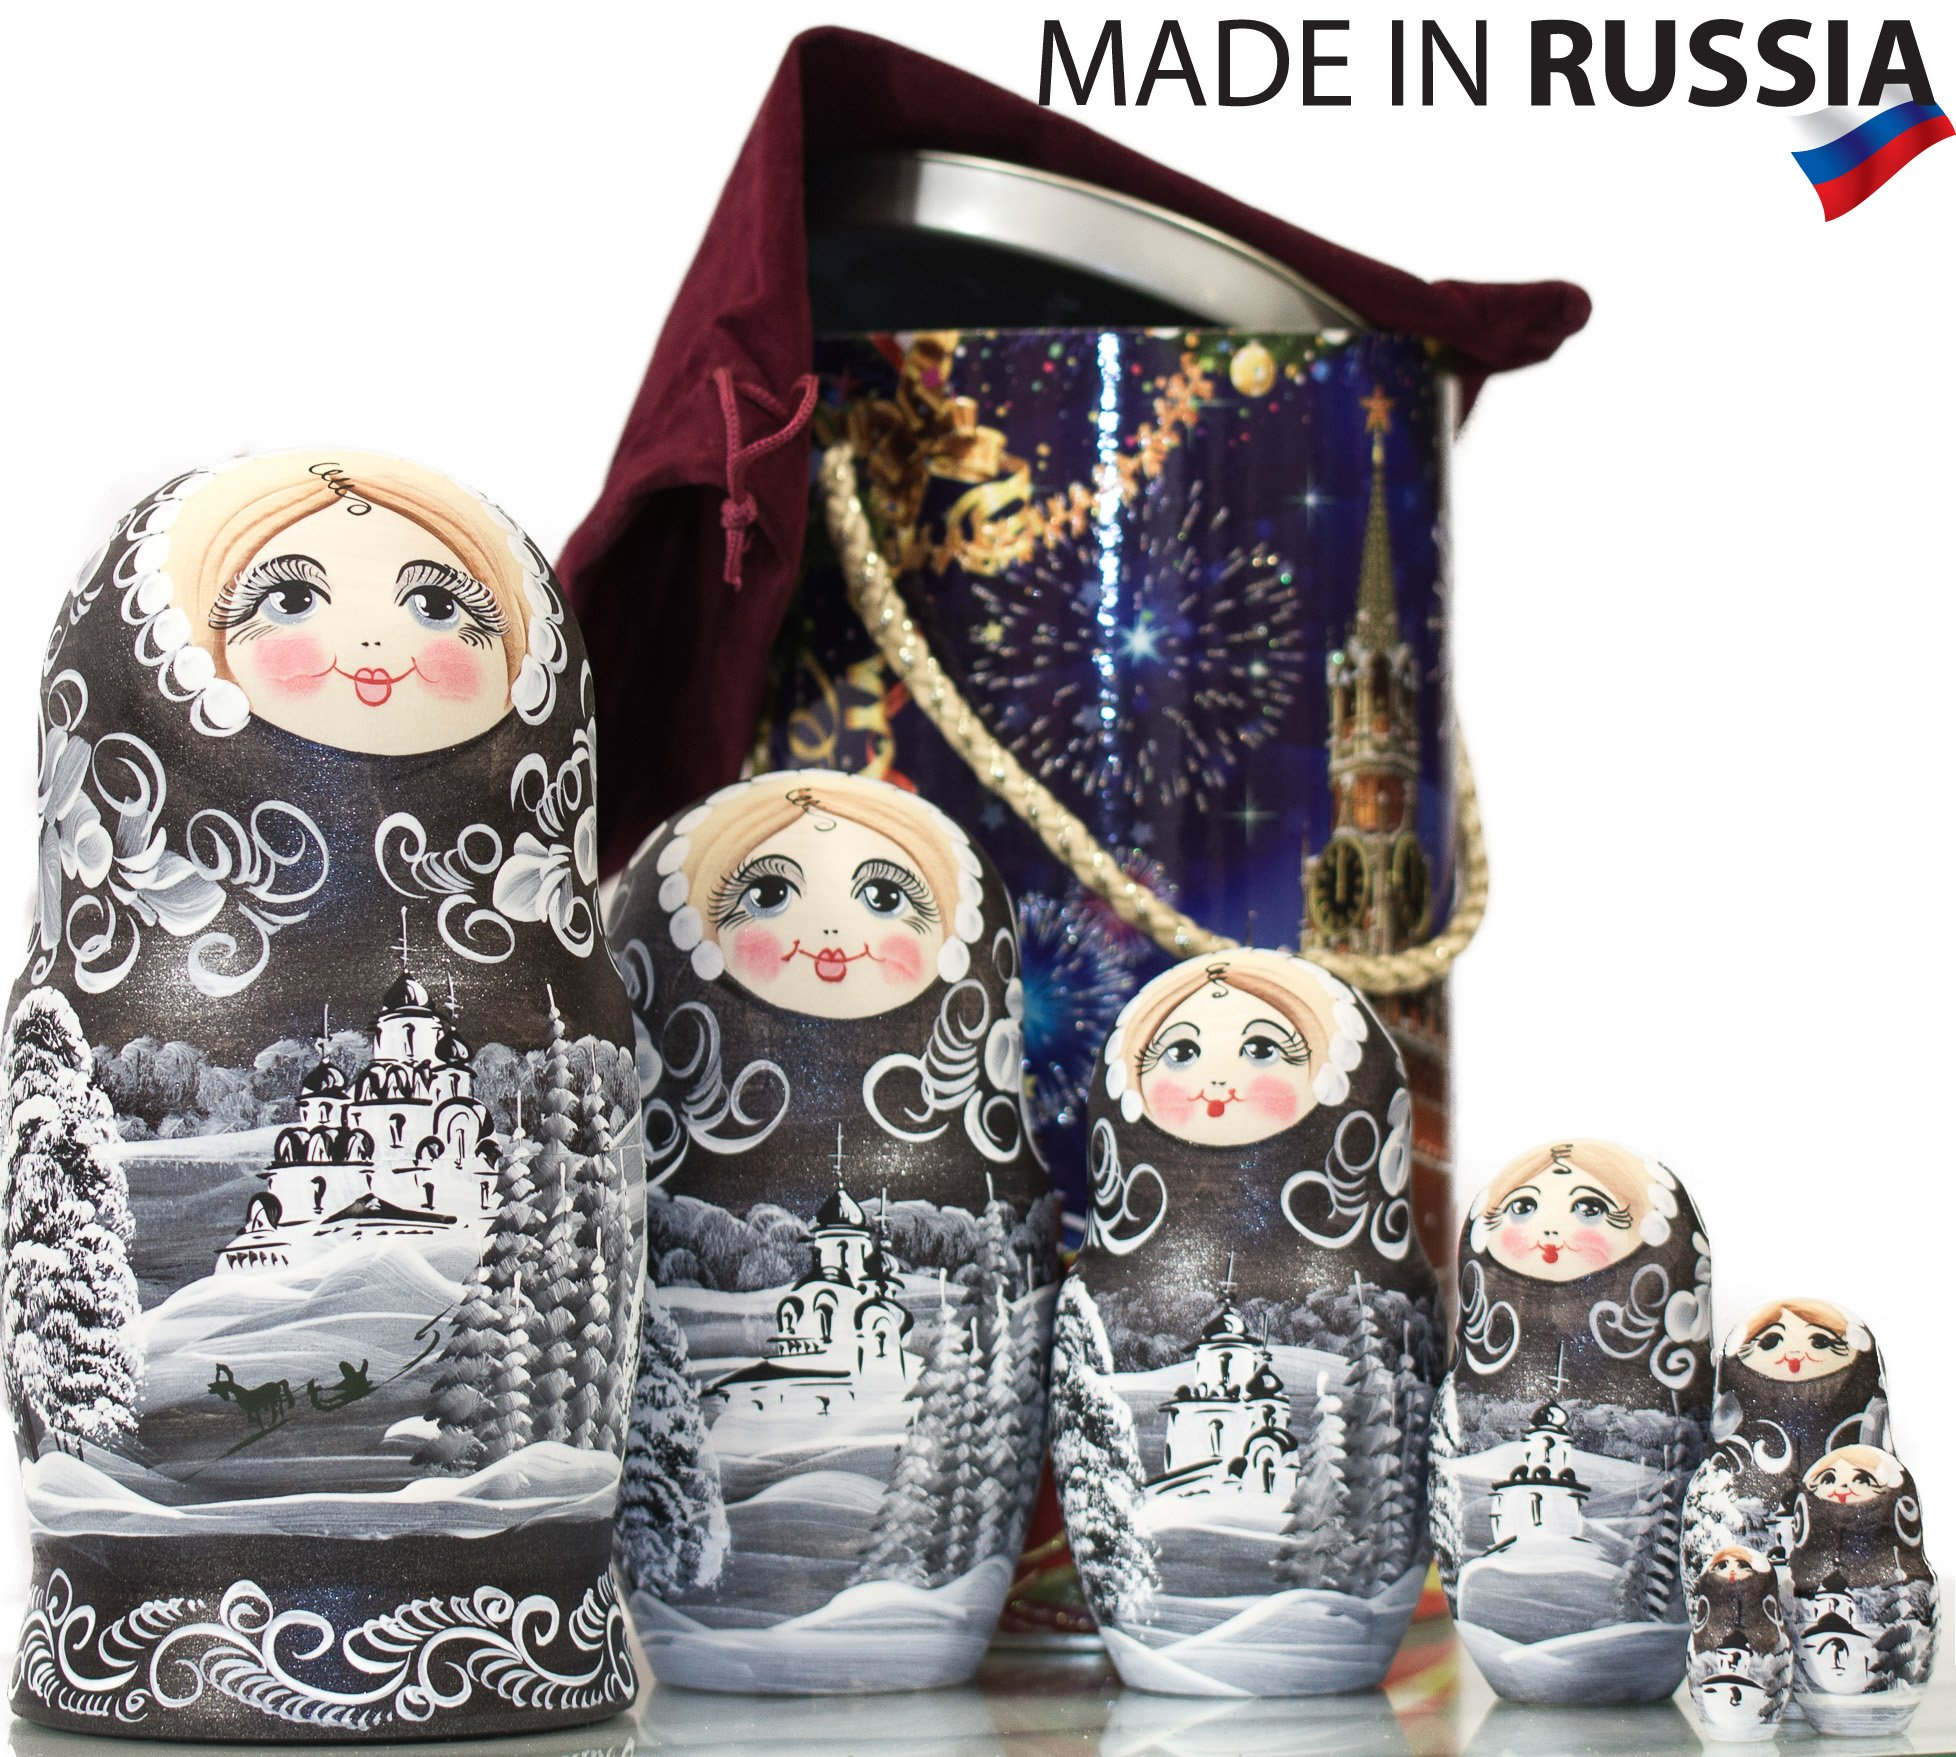 Russian Nesting Doll - ''Winter`s Tale'' - Hand Painted in Russia - MOSCOW KREMLIN GIFT BOX - Wooden Decoration Gift Doll - Traditional Matryoshka Babushka (8`` (7 dolls in 1), Silver Night) by craftsfromrussia